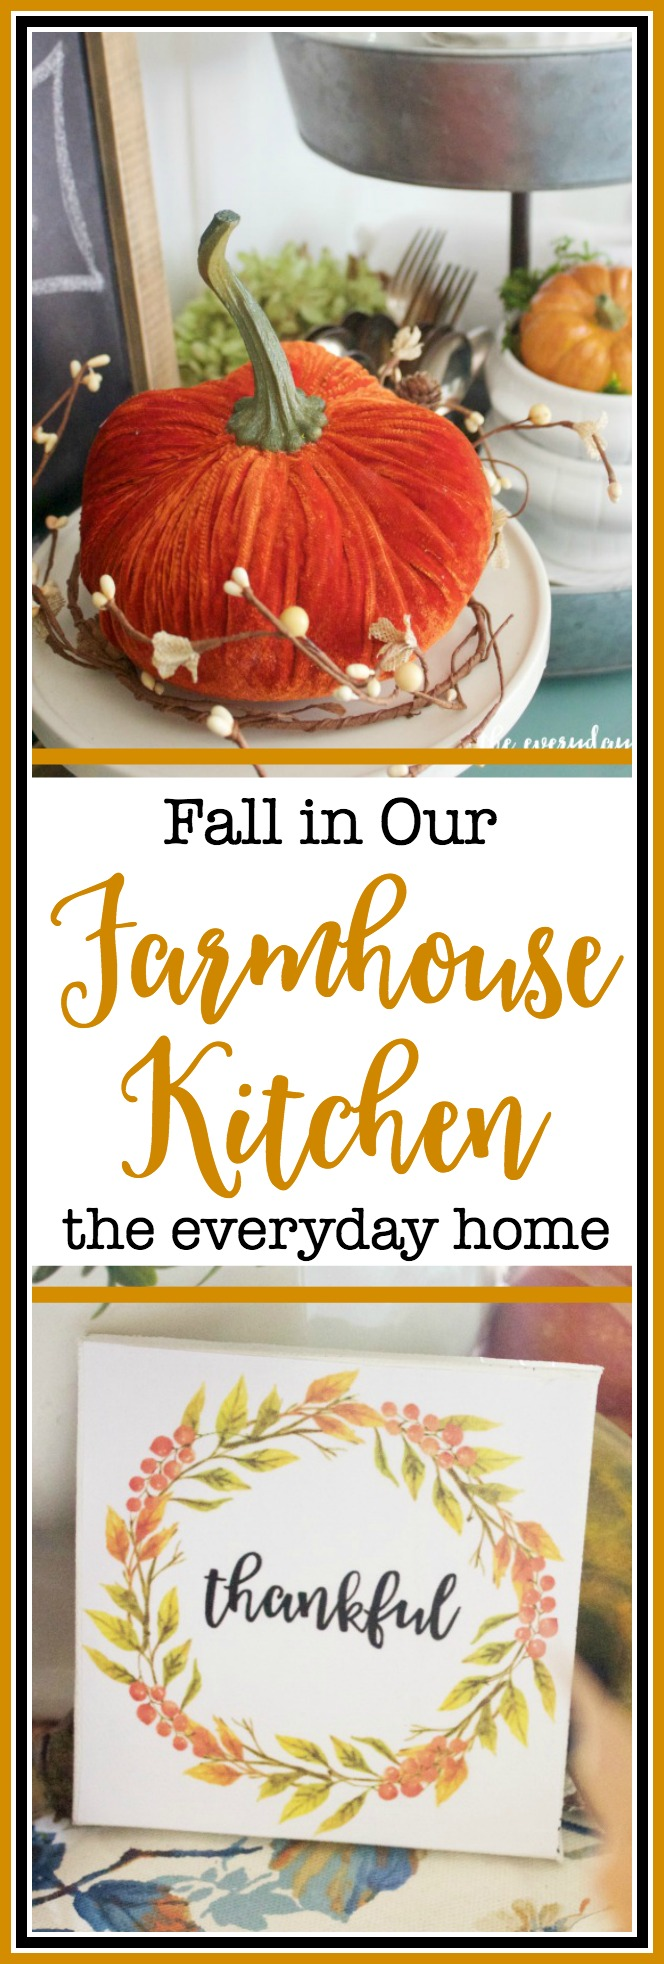 A Farmhouse Kitchen Dressed for Fall | The Everyday Home